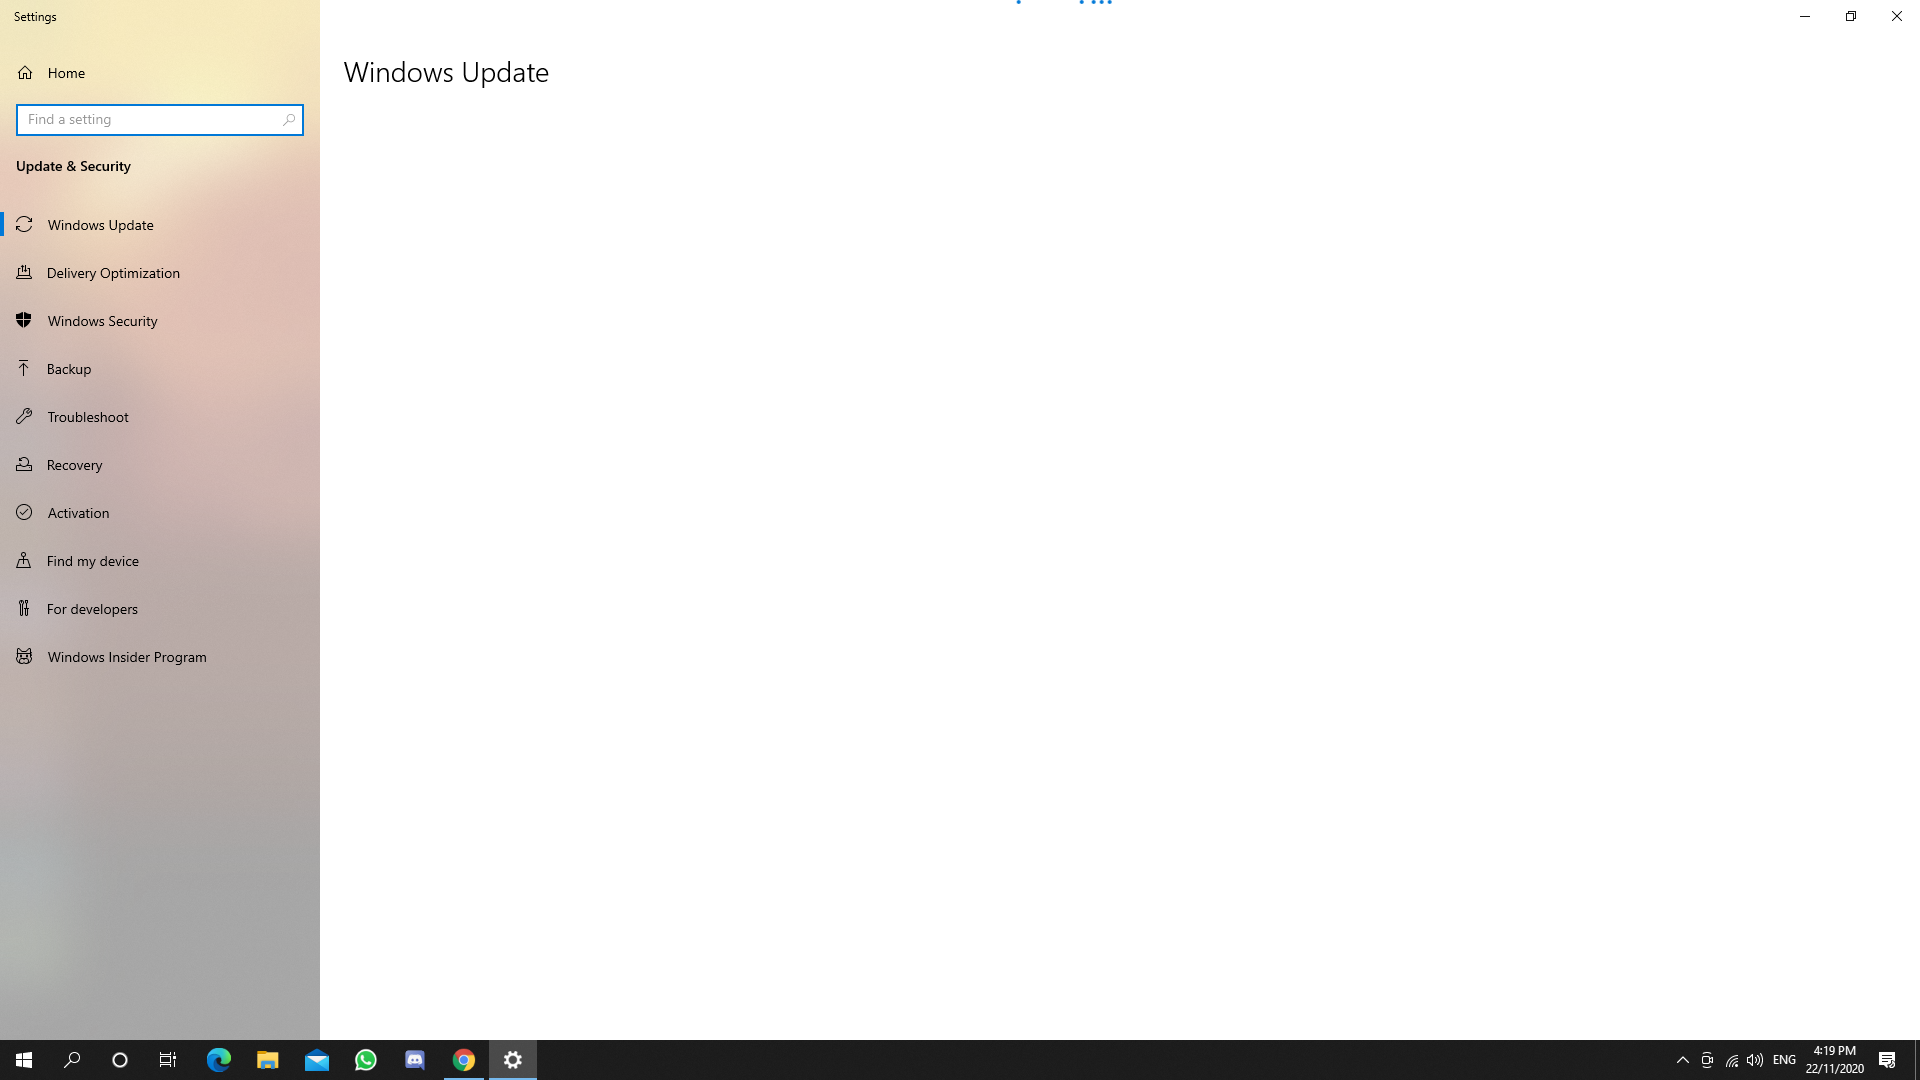 windows update loads forever and stays blank 2a0160c0-a42c-466f-827d-6f72355613c8?upload=true.png